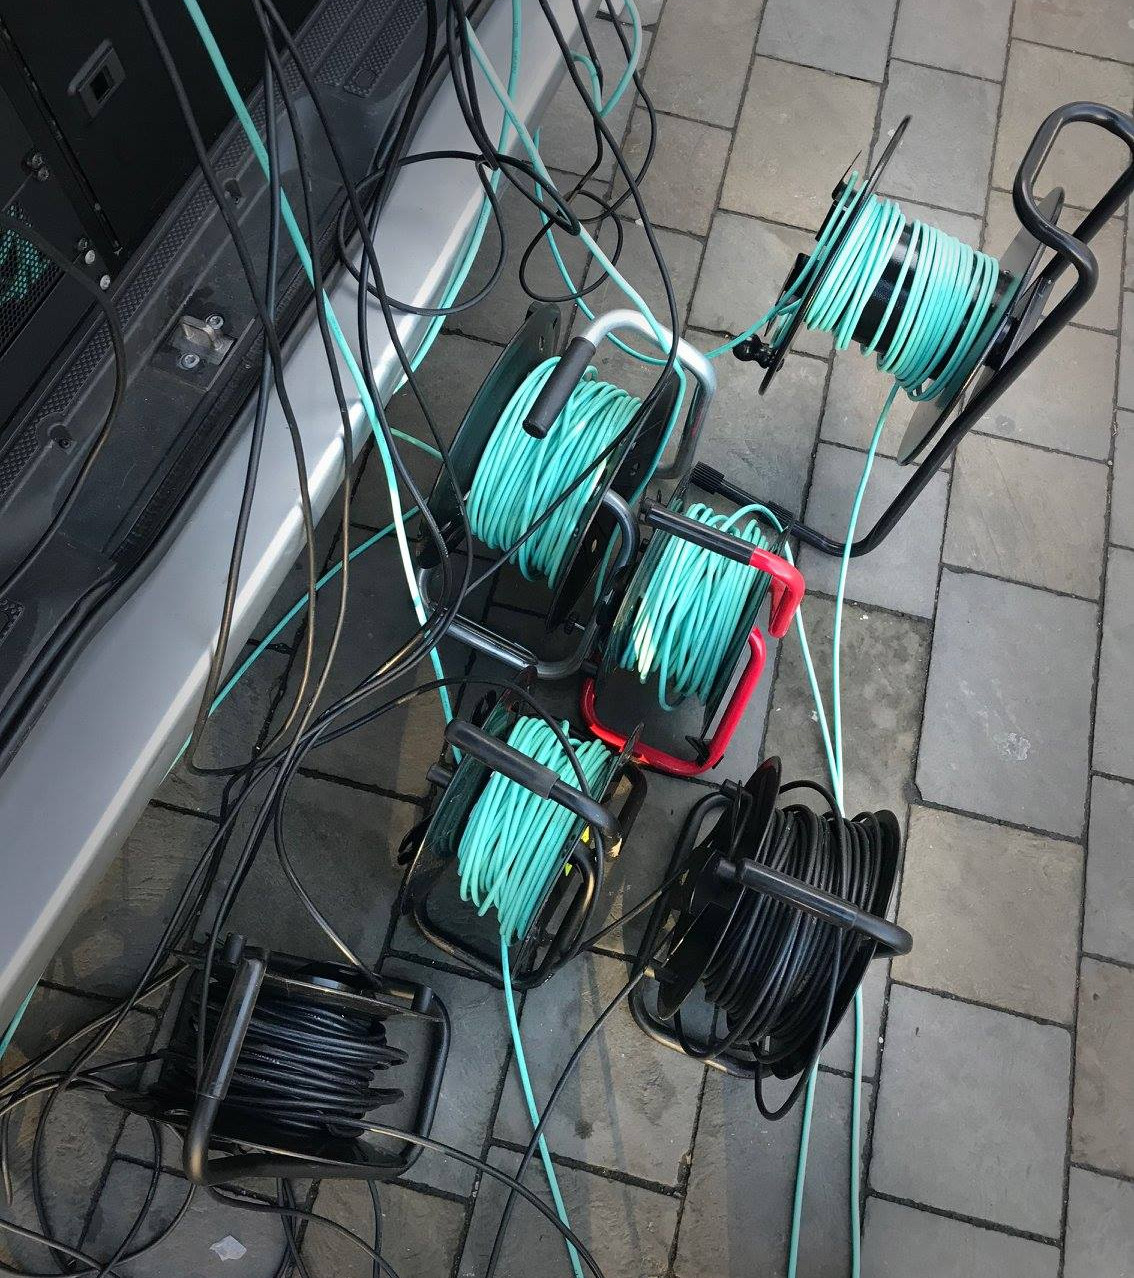 400m of SDI video cables.